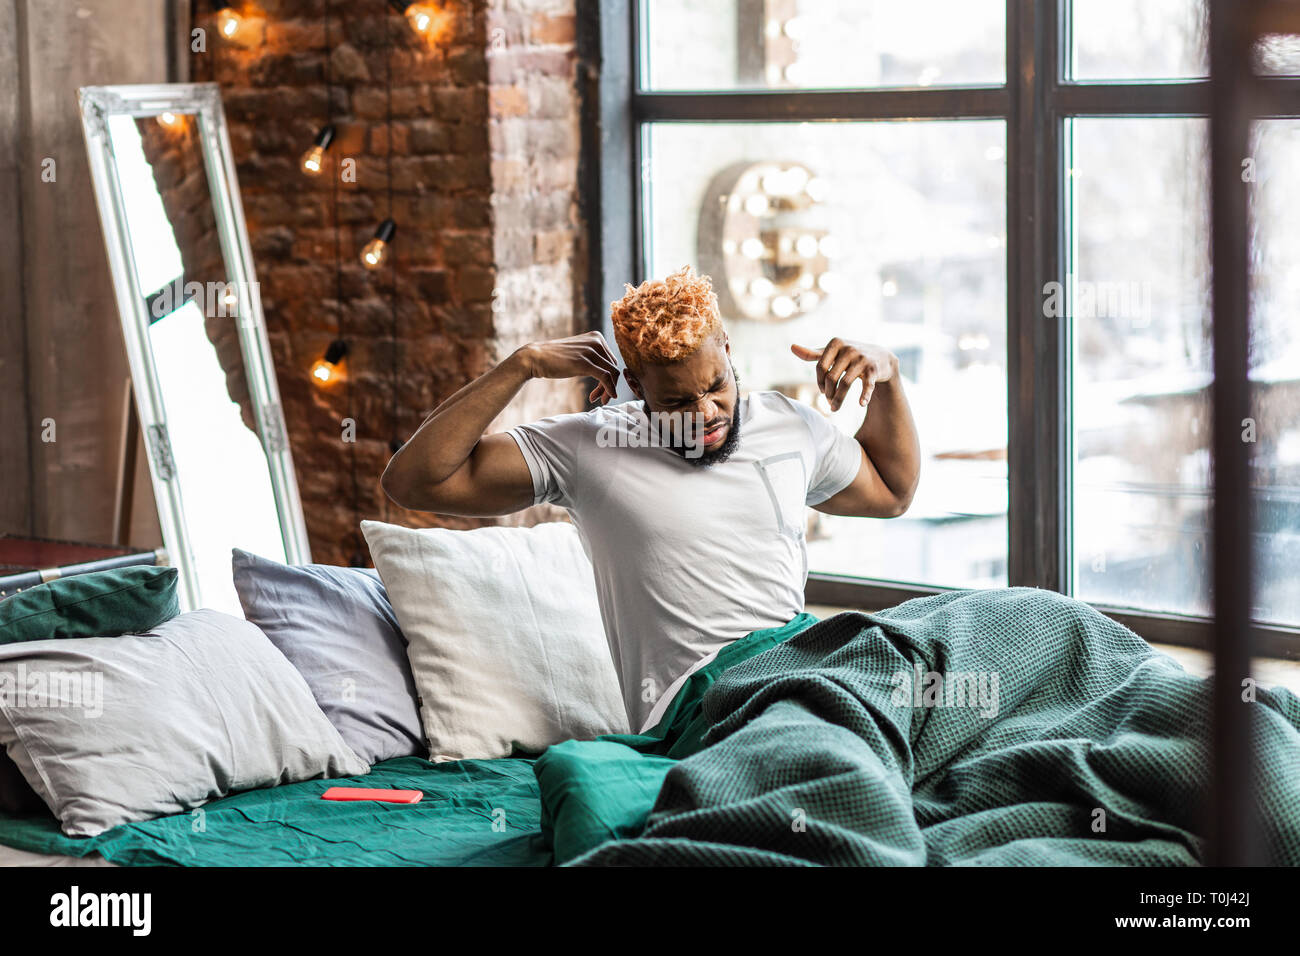 Nice sleepy man getting up in the morning - Stock Image